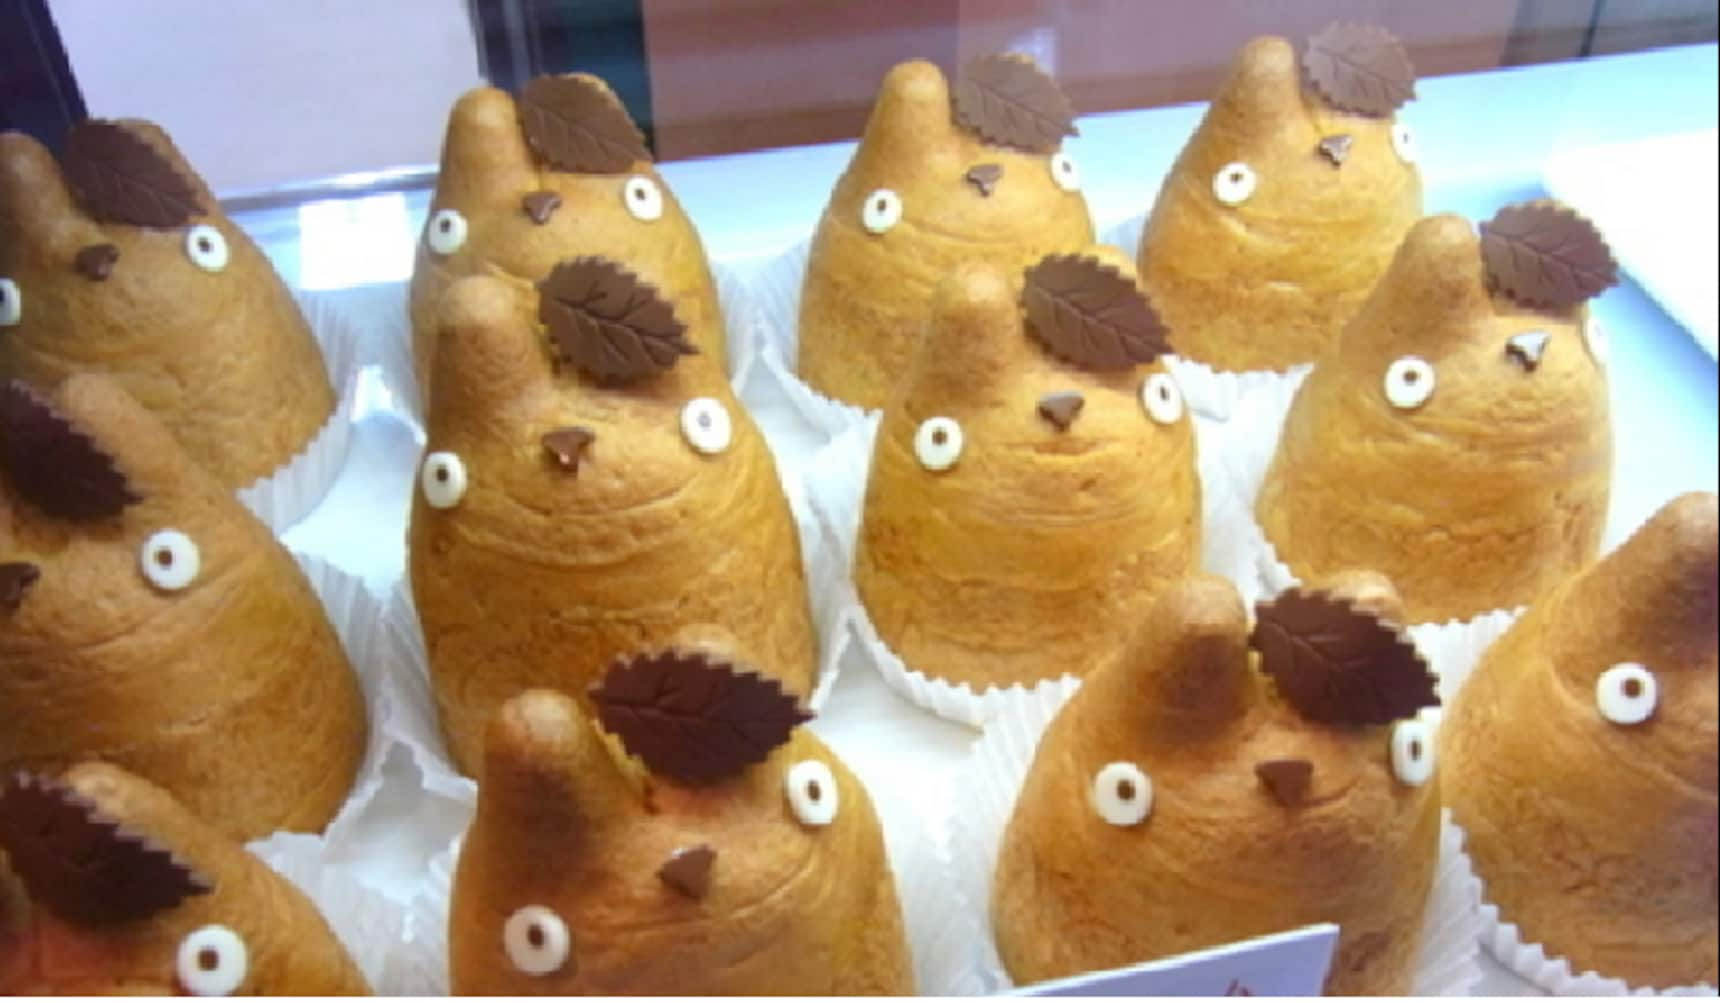 Too Cute to Eat: Top 3 Character Desserts